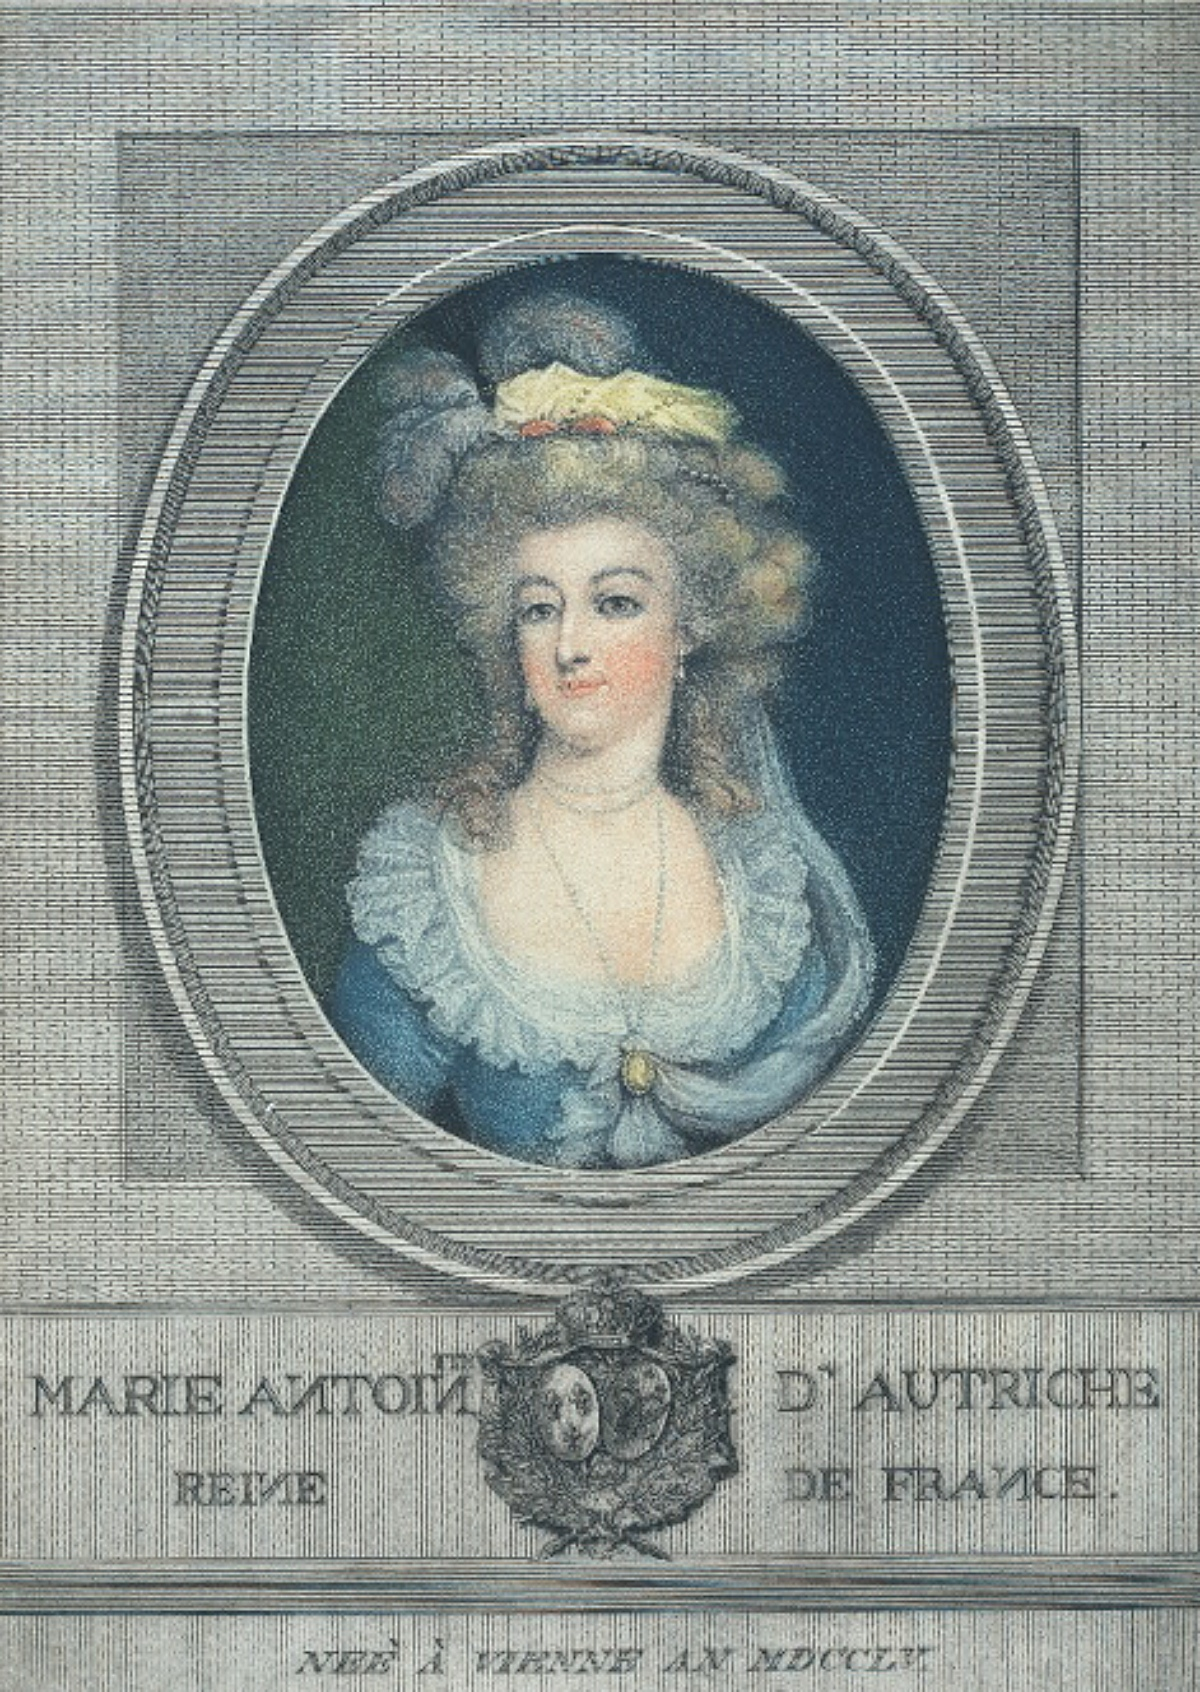 colorized engraving of Marie Antoinette